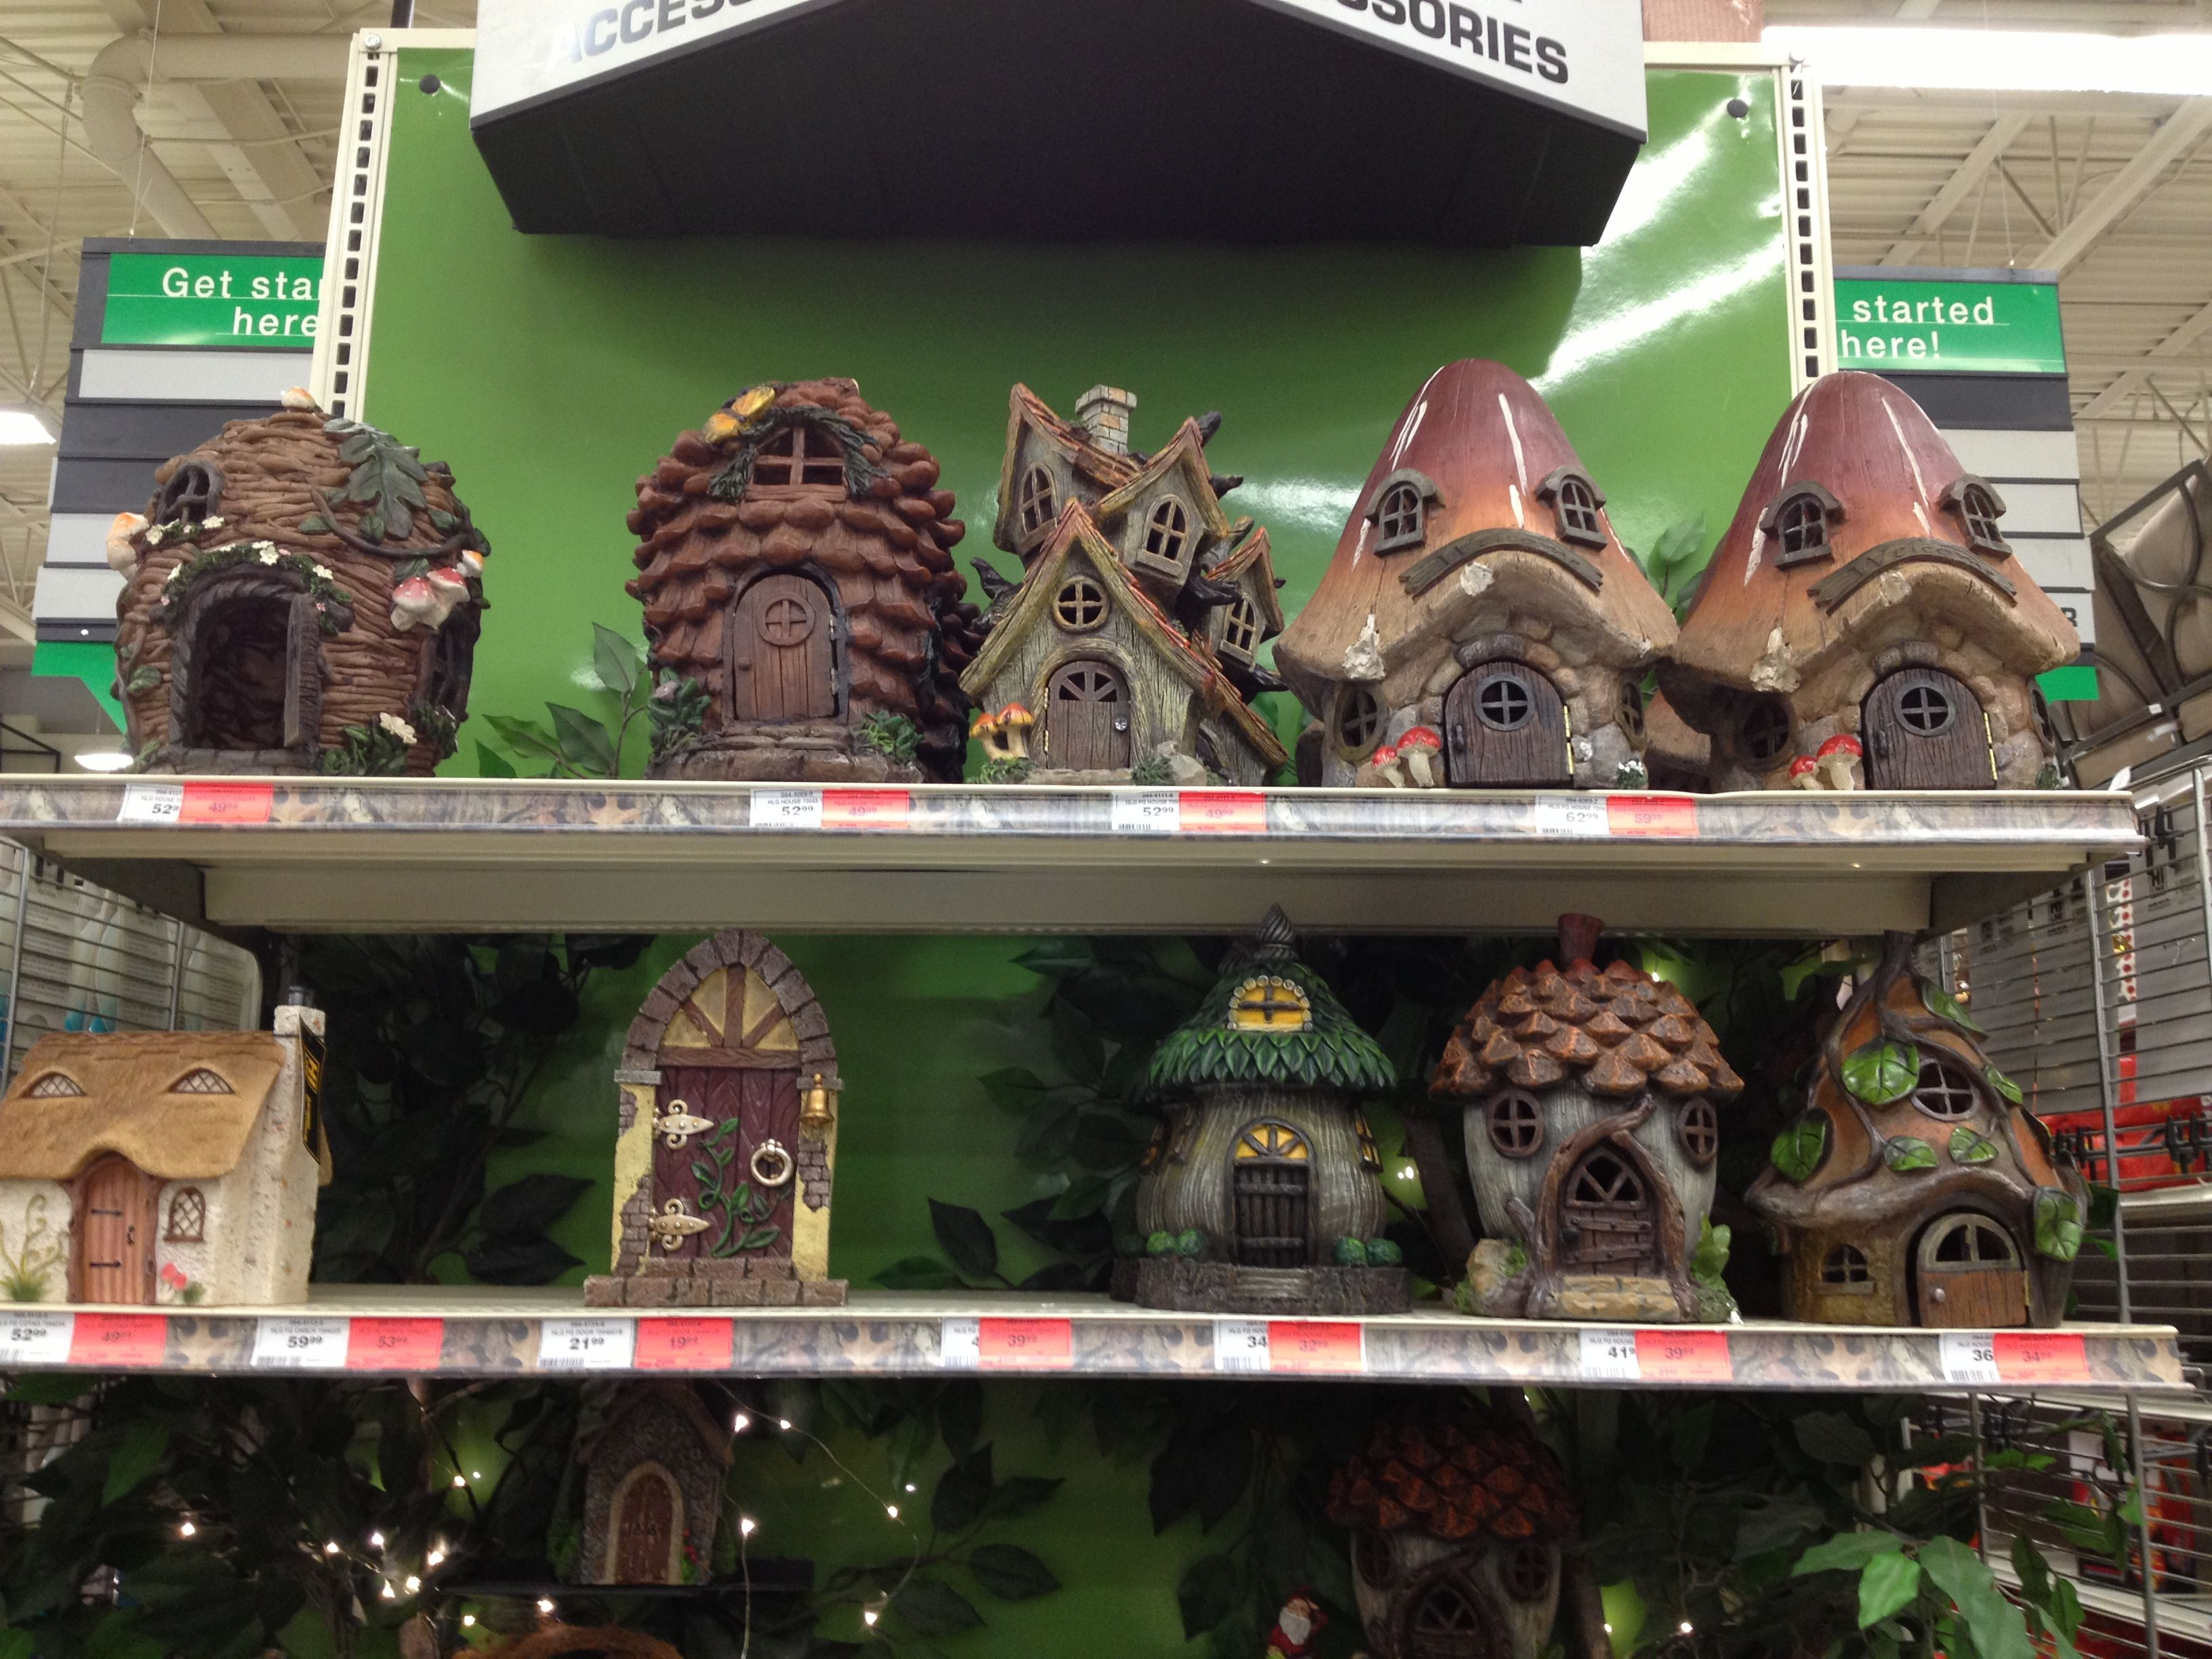 is canadian tire open on christmas eve